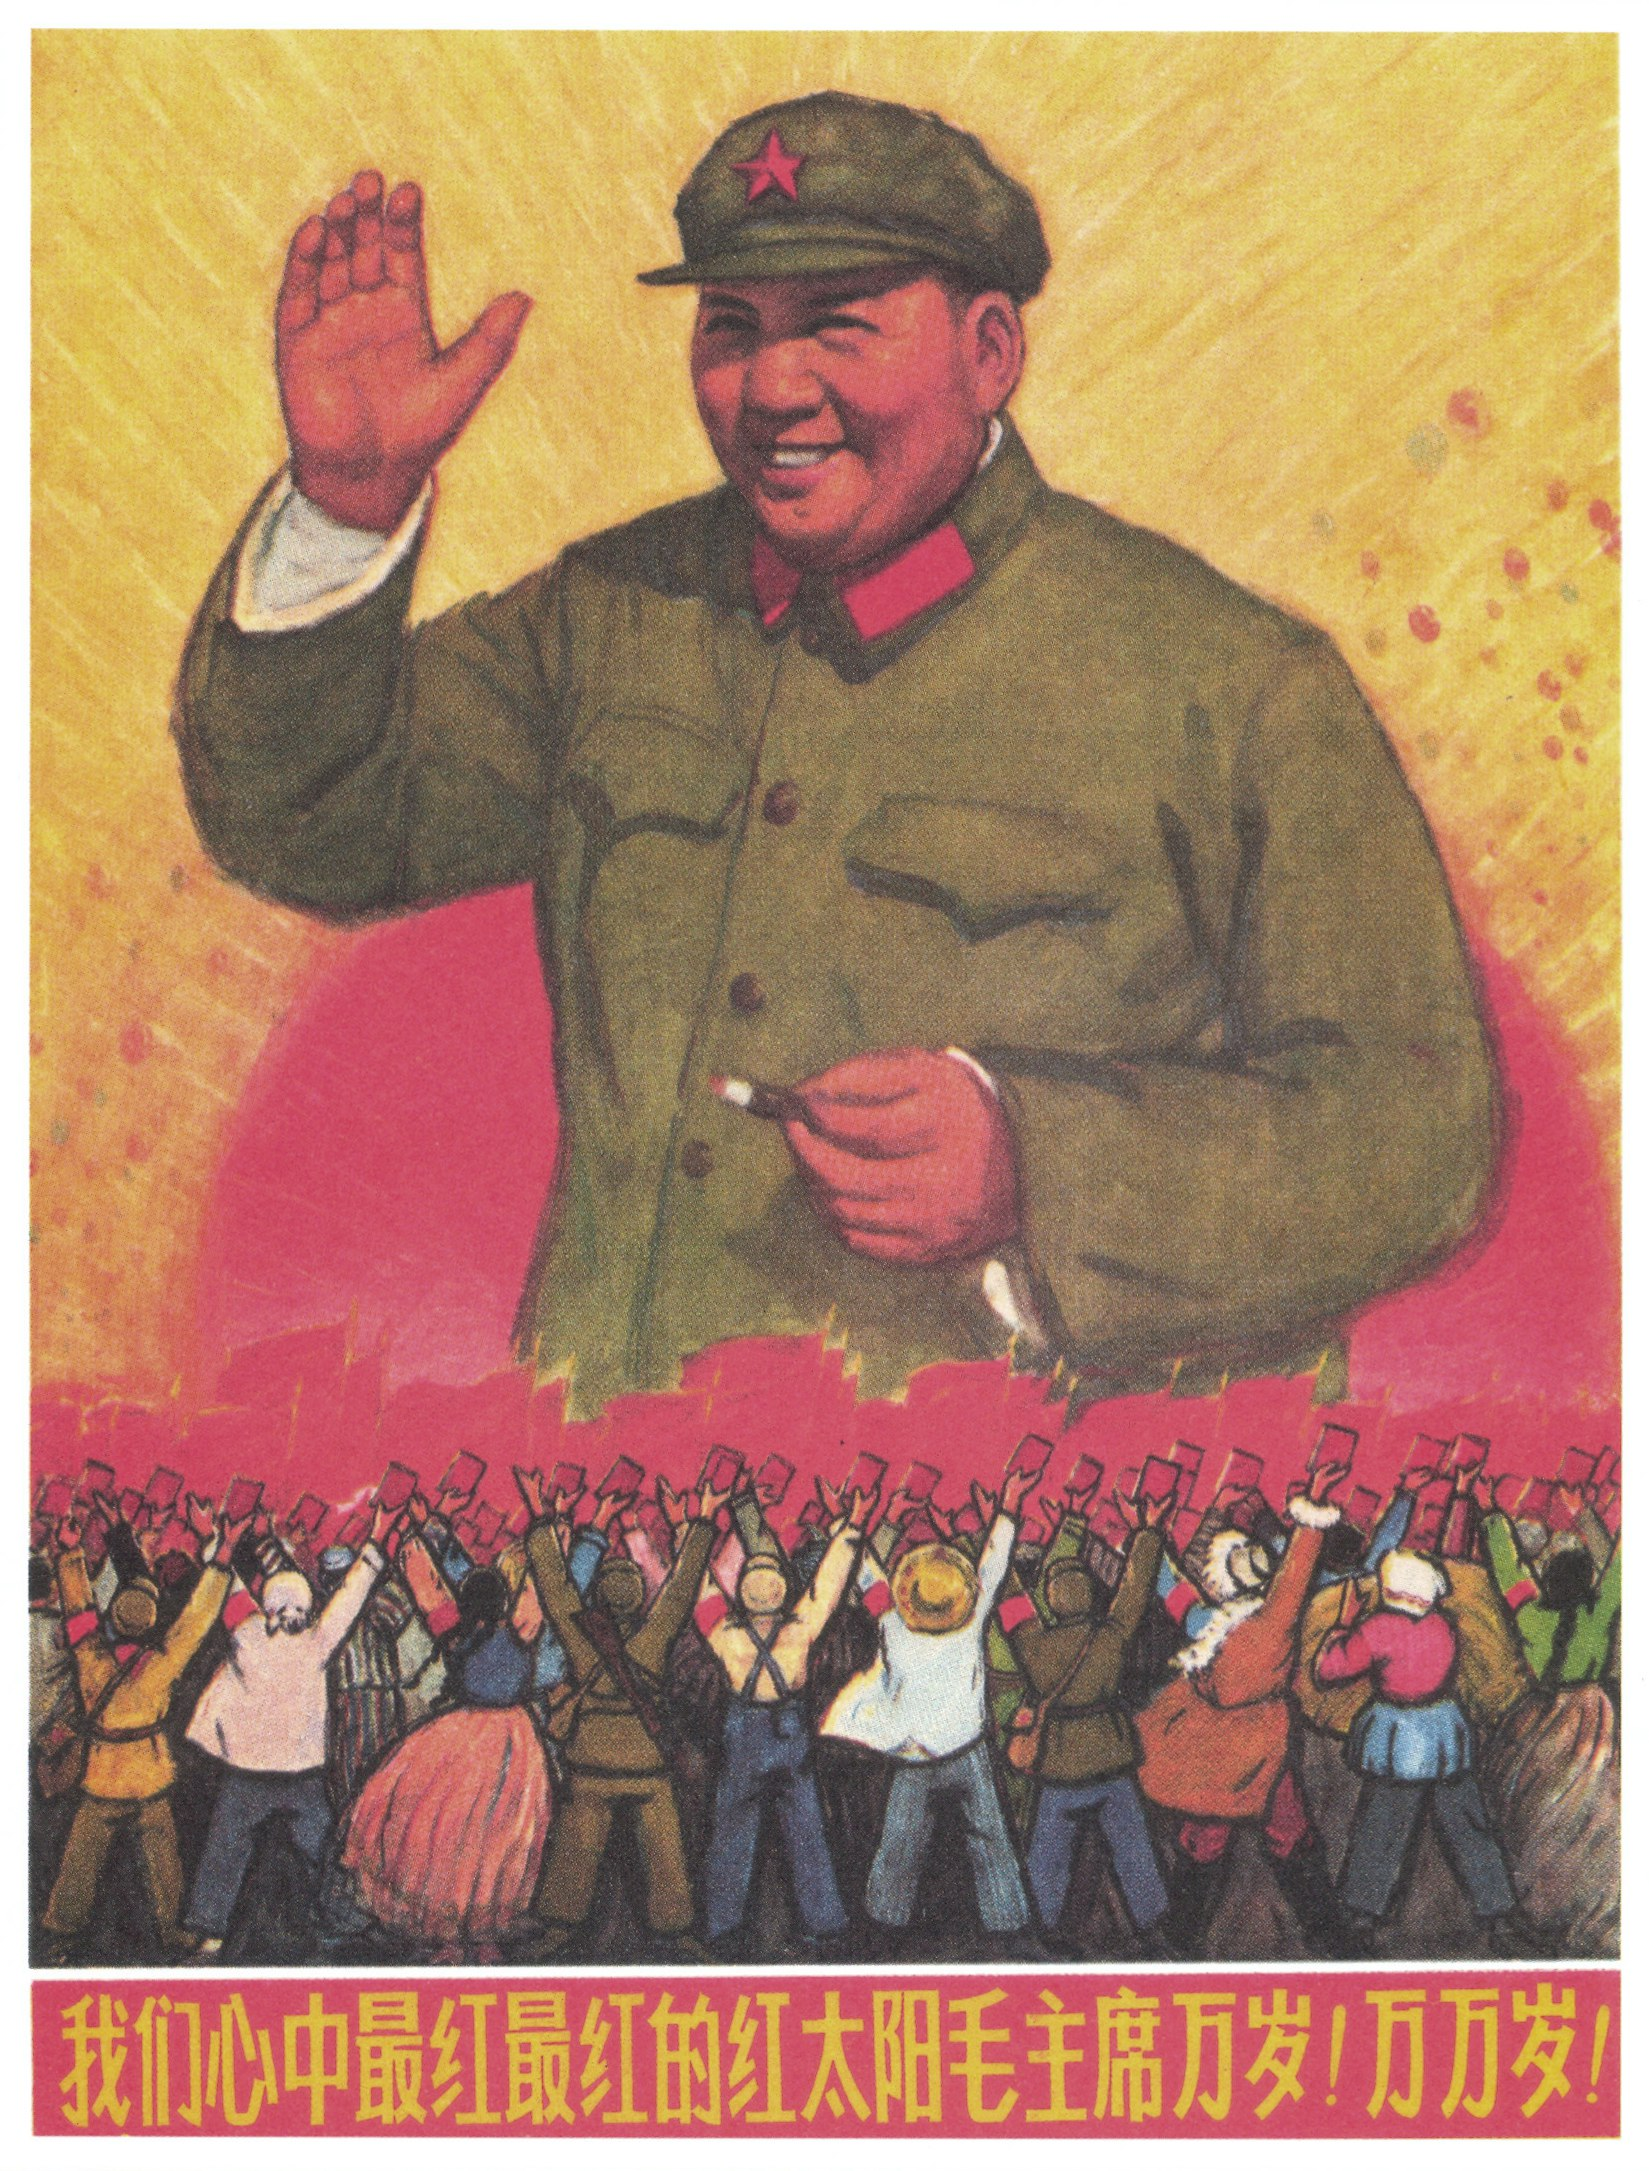 Long-Live-Chairman-Mao-the-Reddest-Sun-in-Our-Hearts-1967